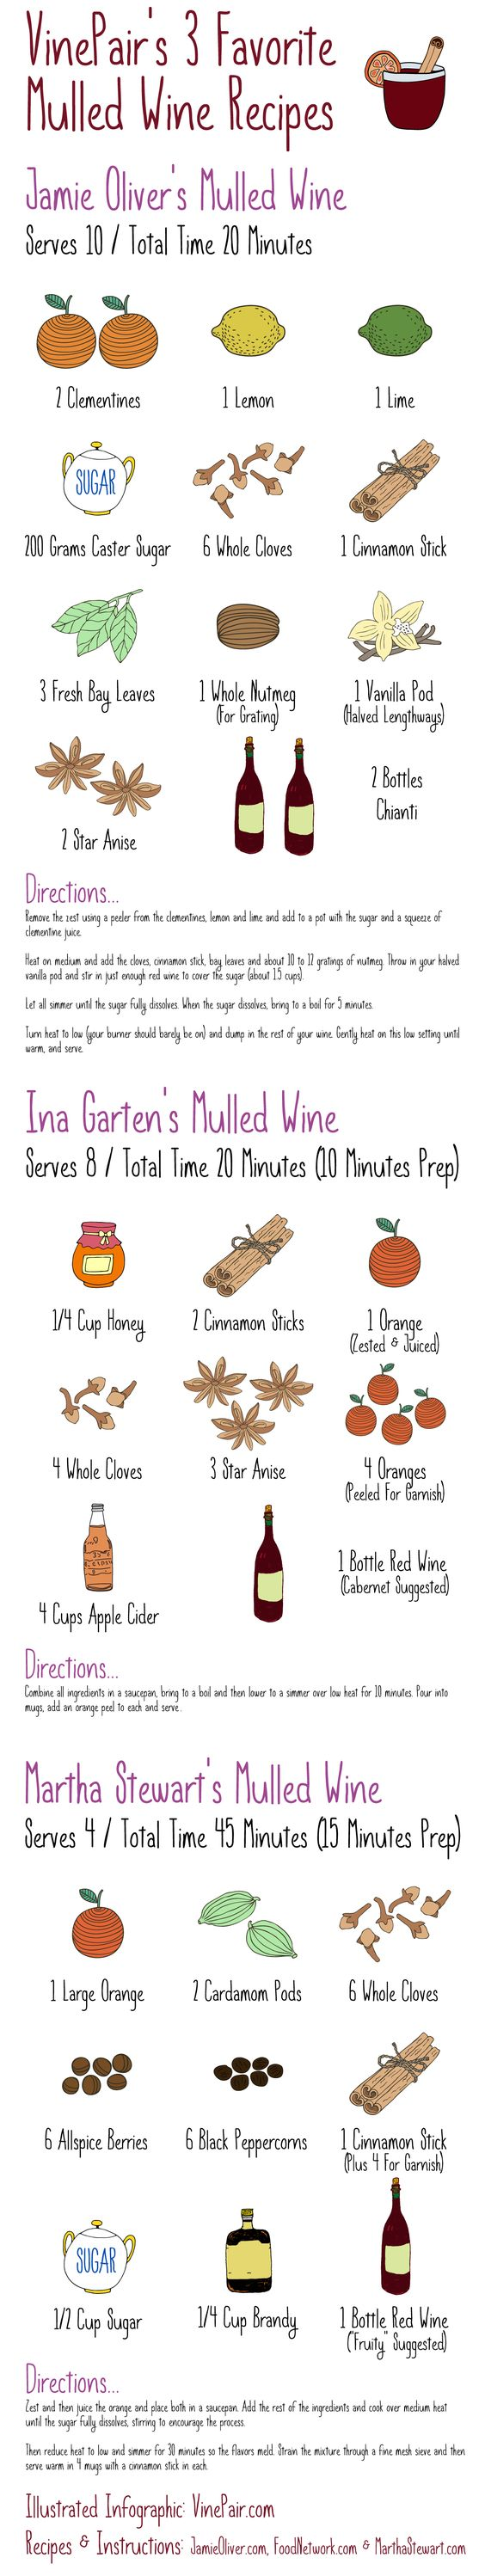 3 Of Our Favorite Mulled Wine Recipes Infographic